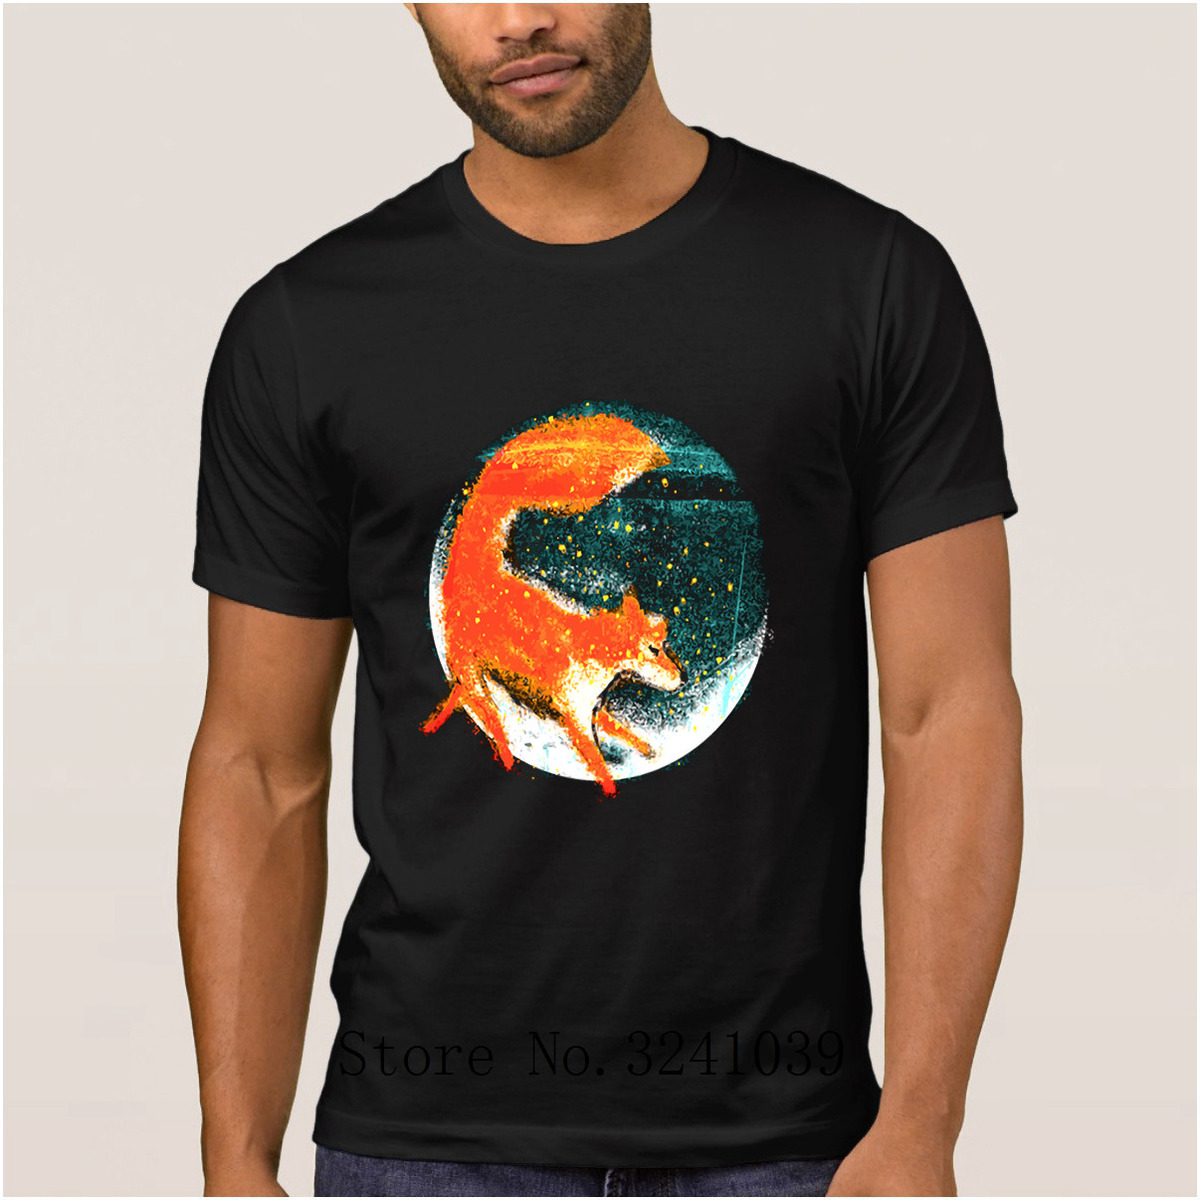 La Maxpa Knitted Authentic Cute fox Fantastic t shirt men Spring Graphic t-shirt Novelty tshirt mens round Neck Top Quality